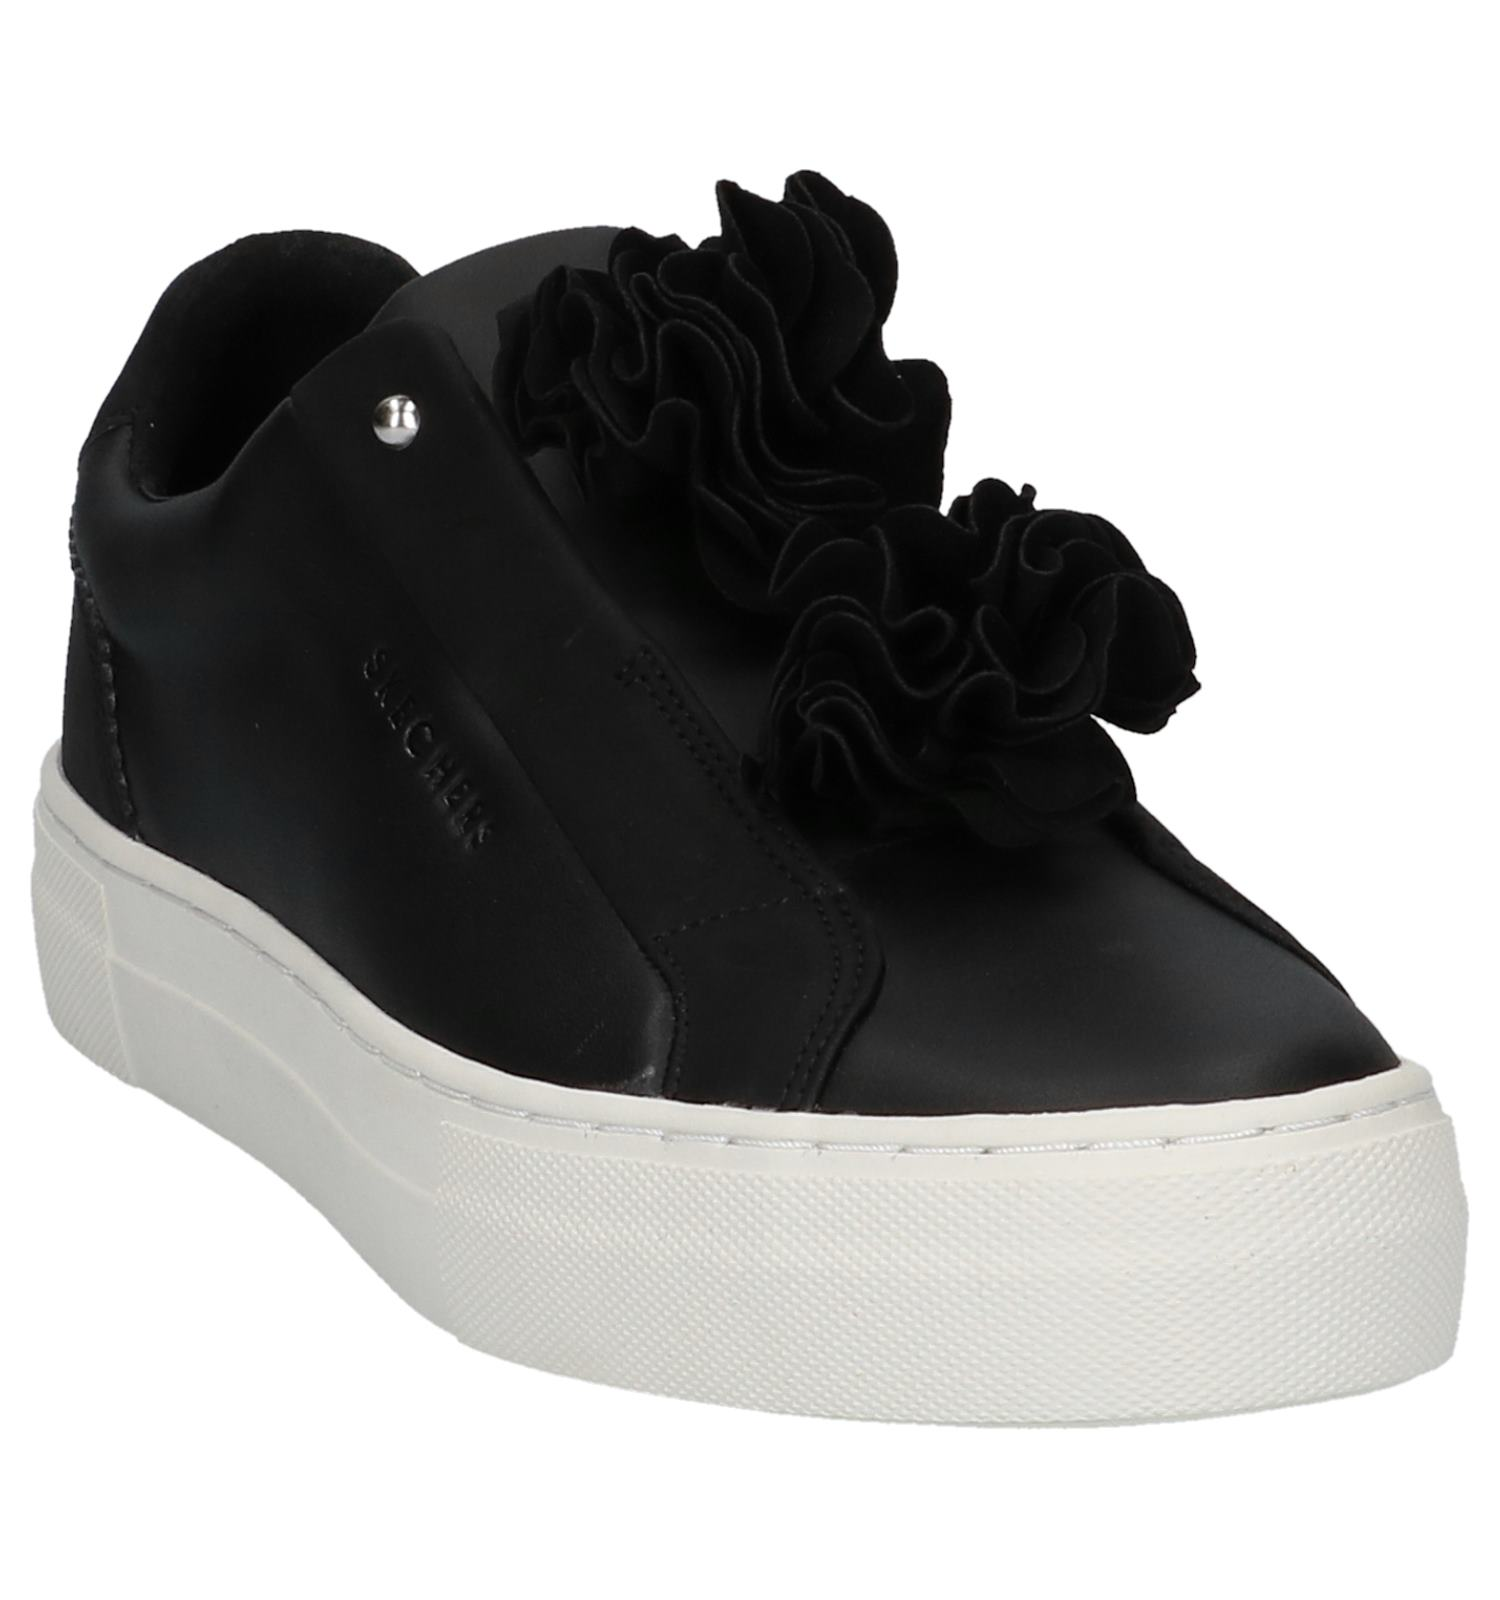 Casual Instappers Skechers Instappers Casual Skechers Zwart Zwart Skechers Zwart Casual Instappers SUzpLqjMVG